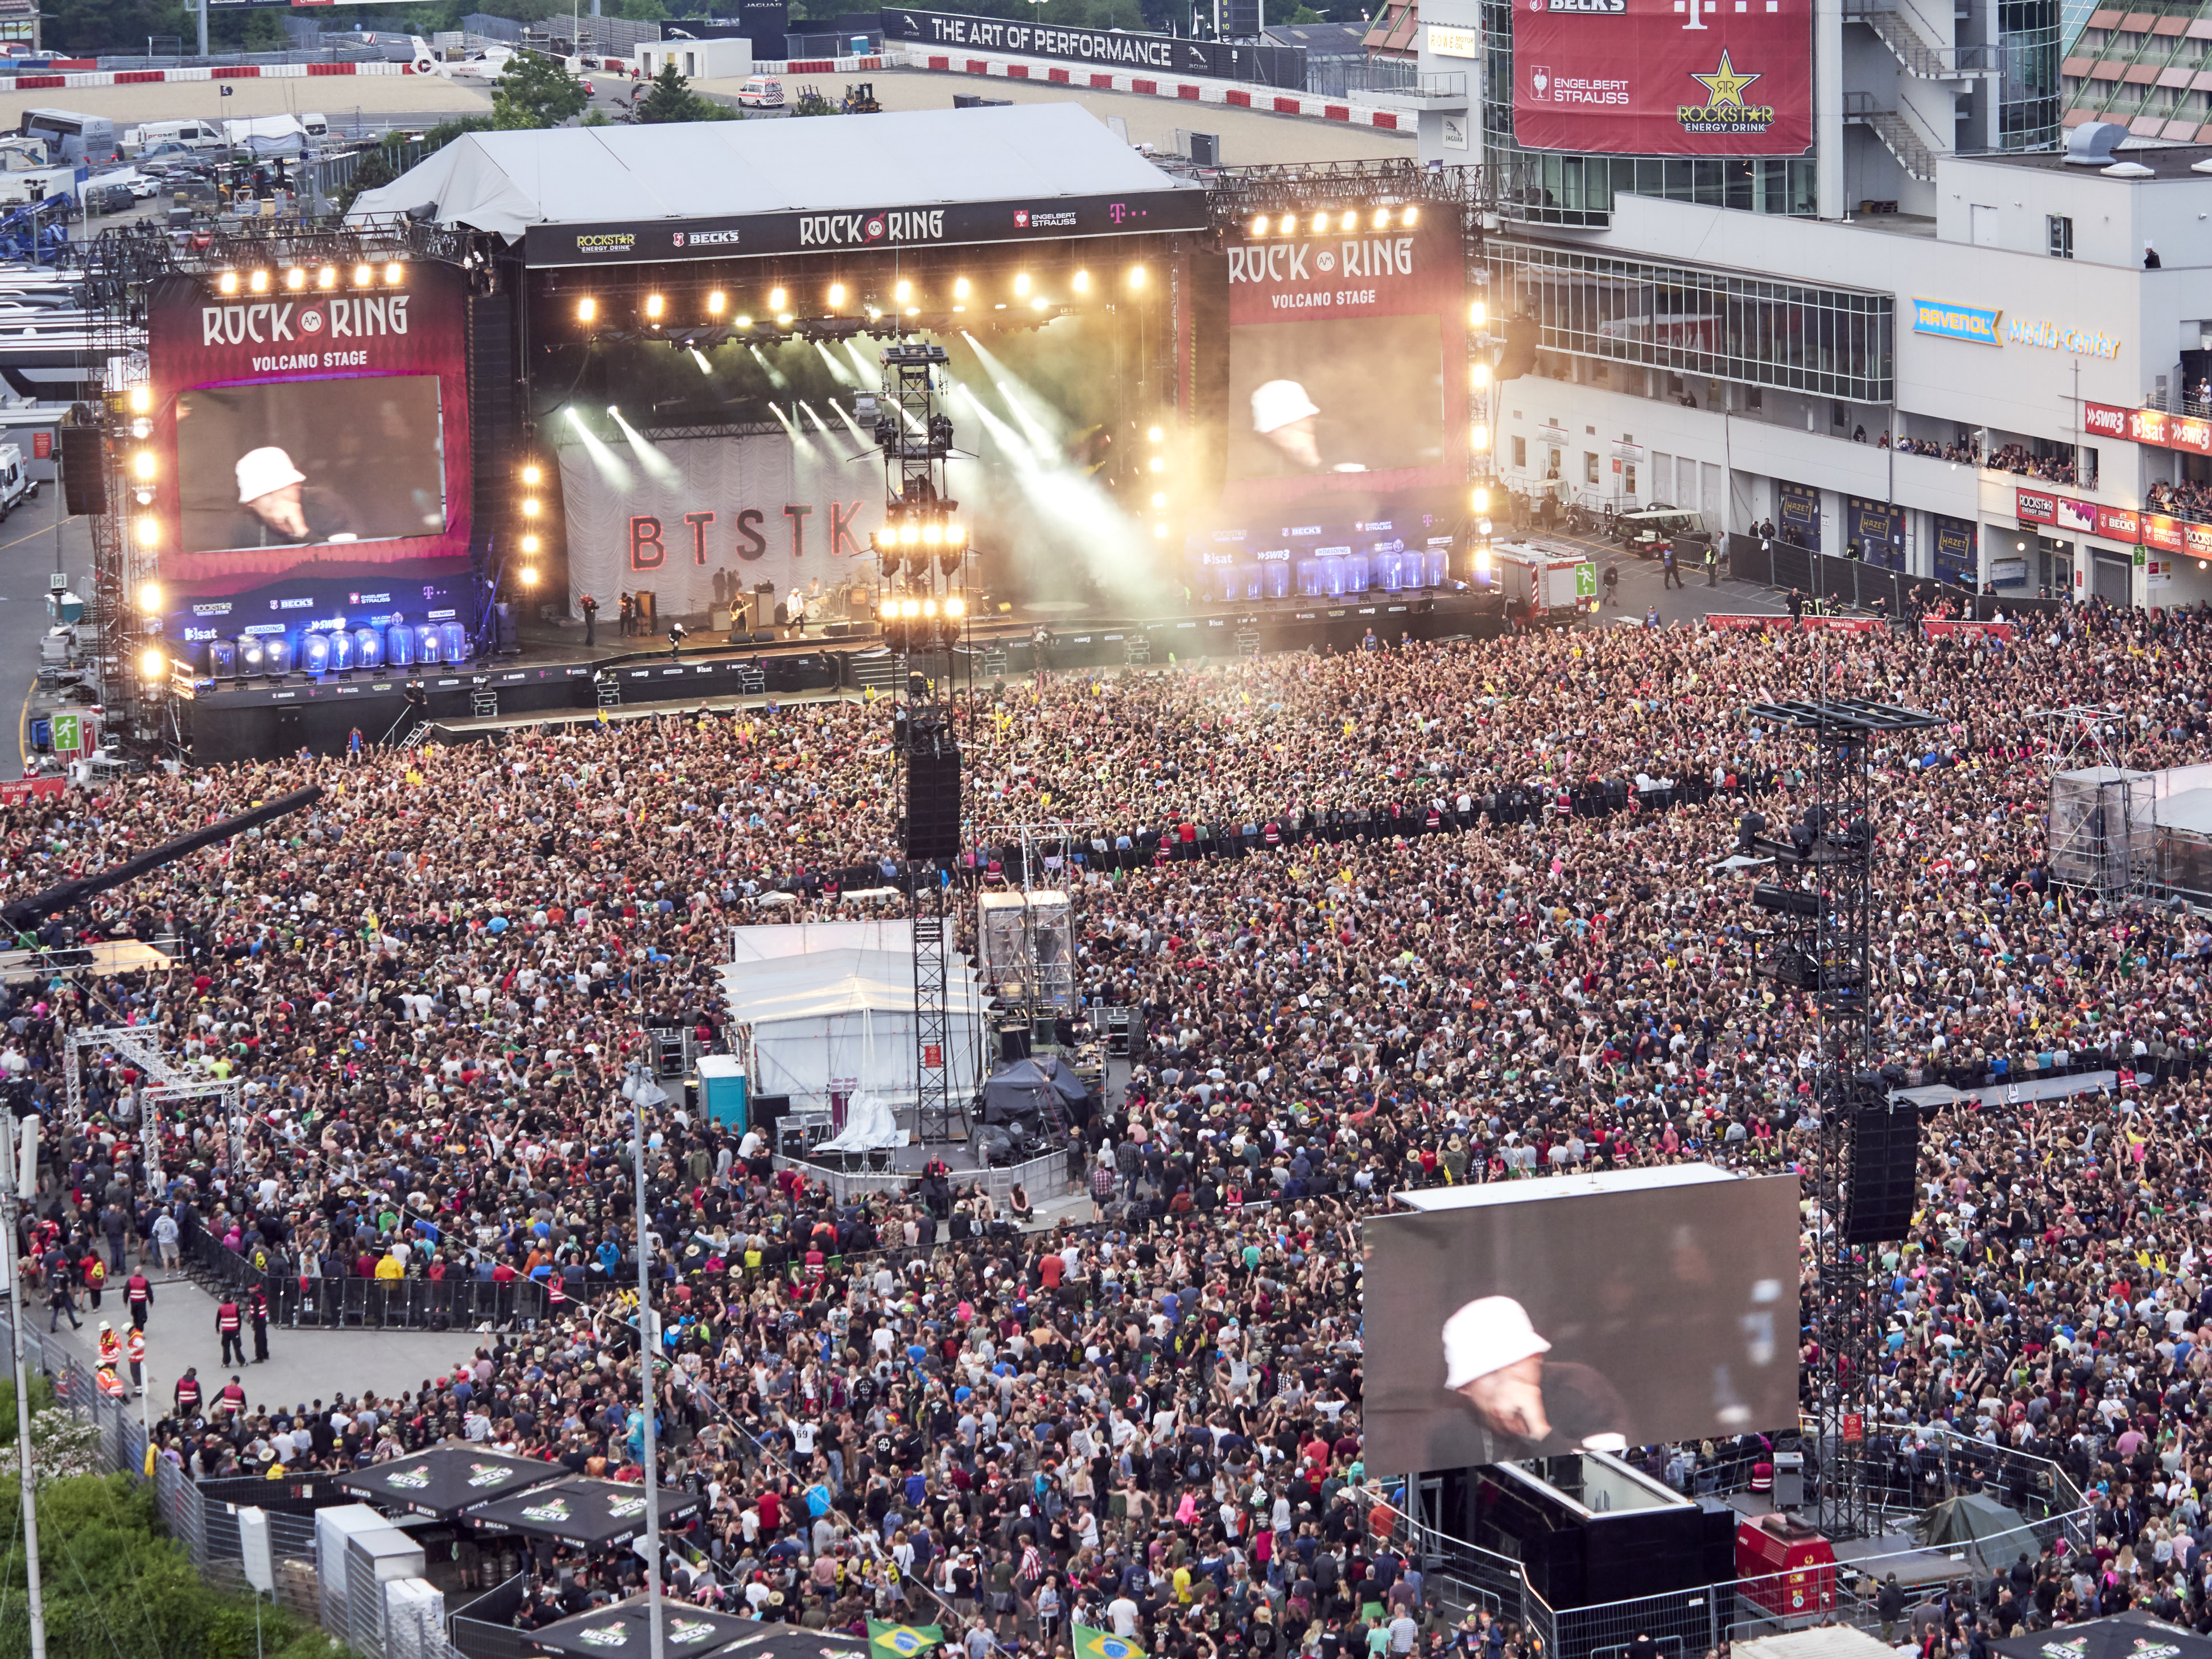 rock am ring 2019 gerГјchte